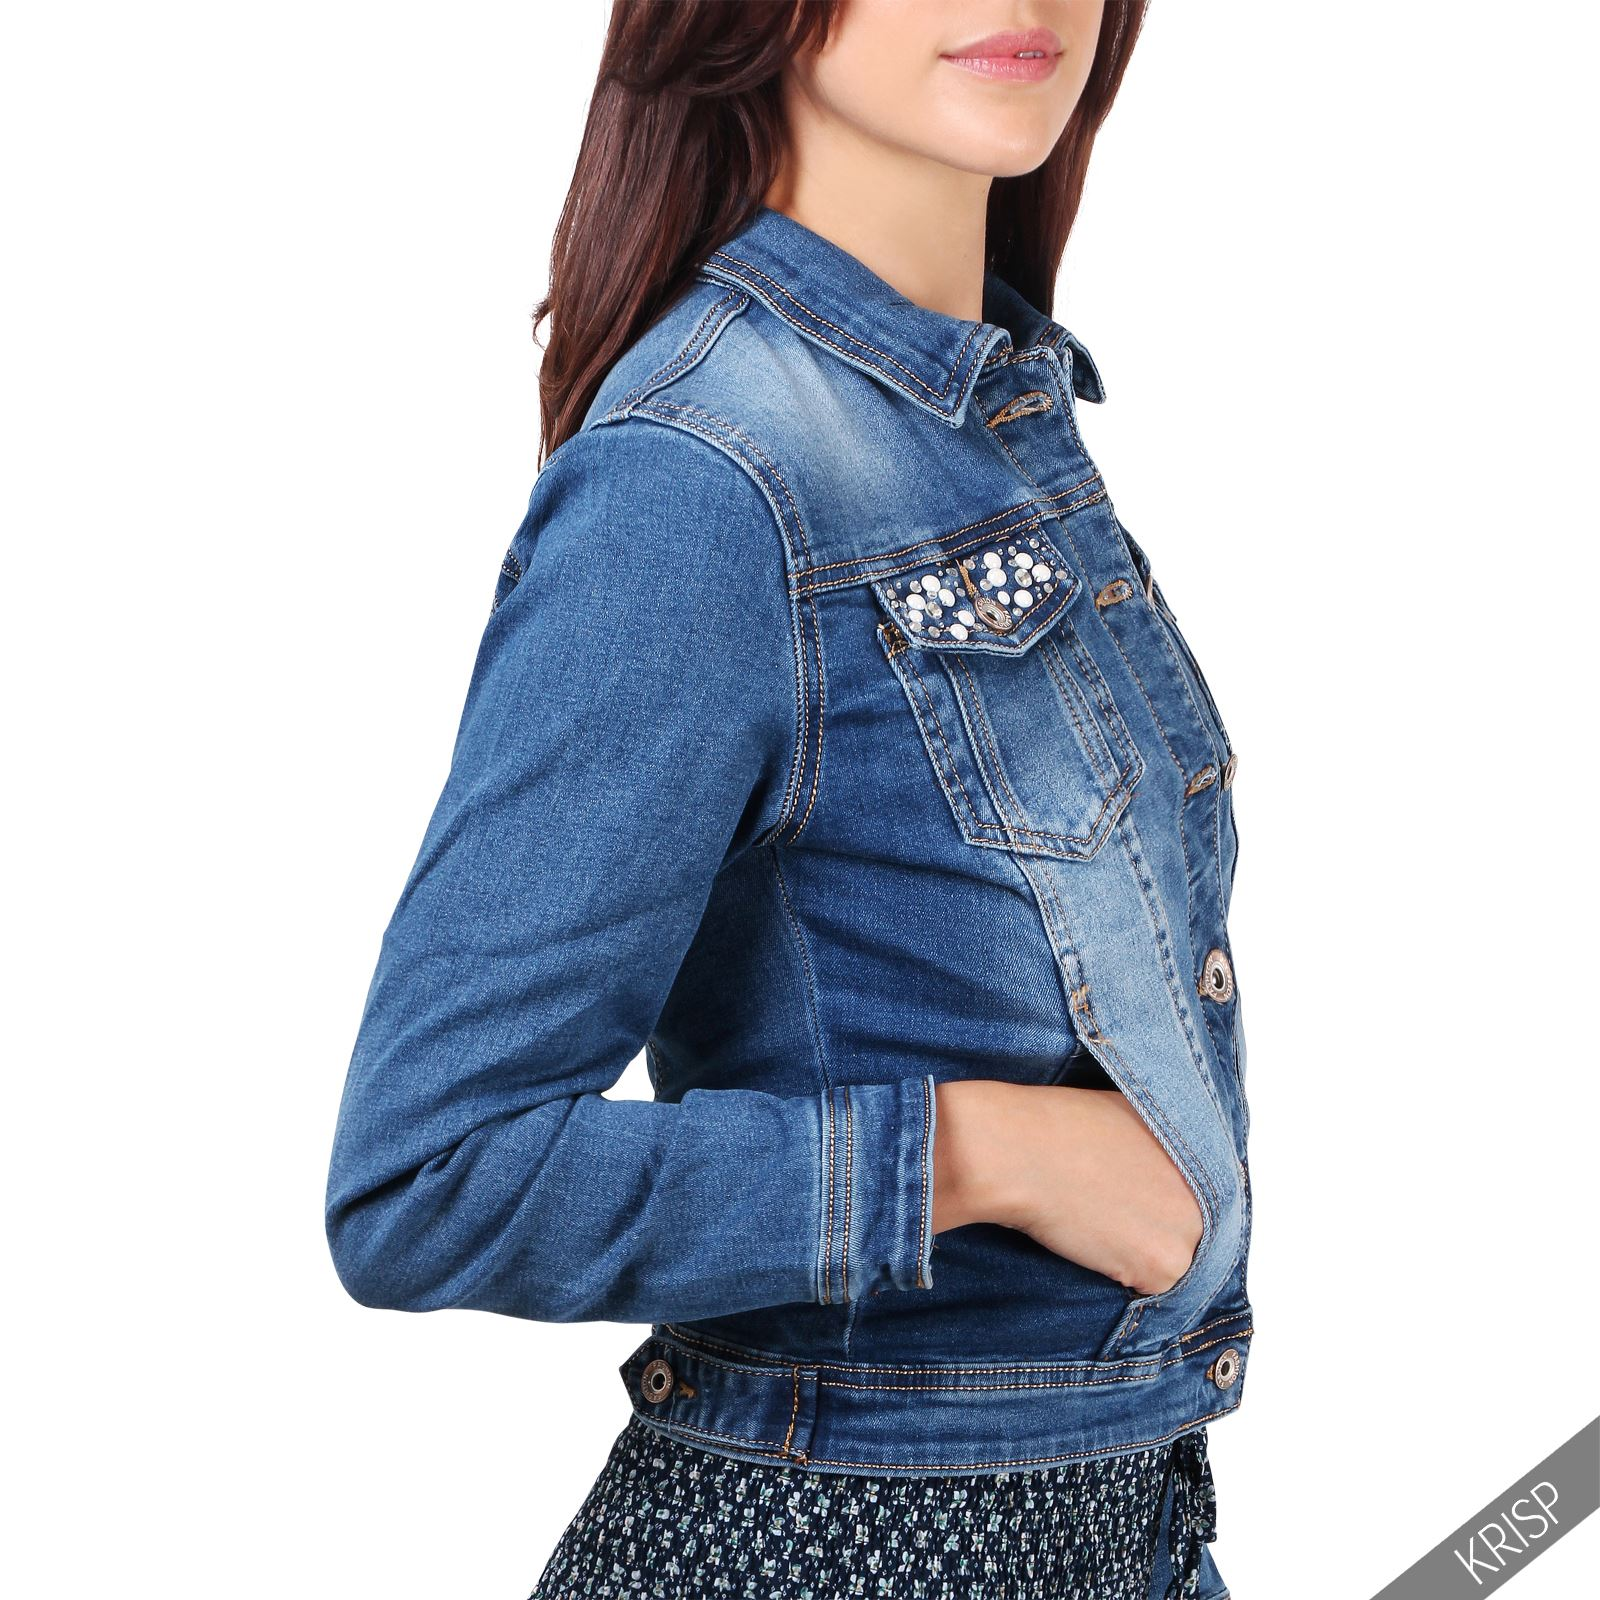 damen jeansjacke mit patches bergang jacke kurze denim weste elegant tailliert ebay. Black Bedroom Furniture Sets. Home Design Ideas